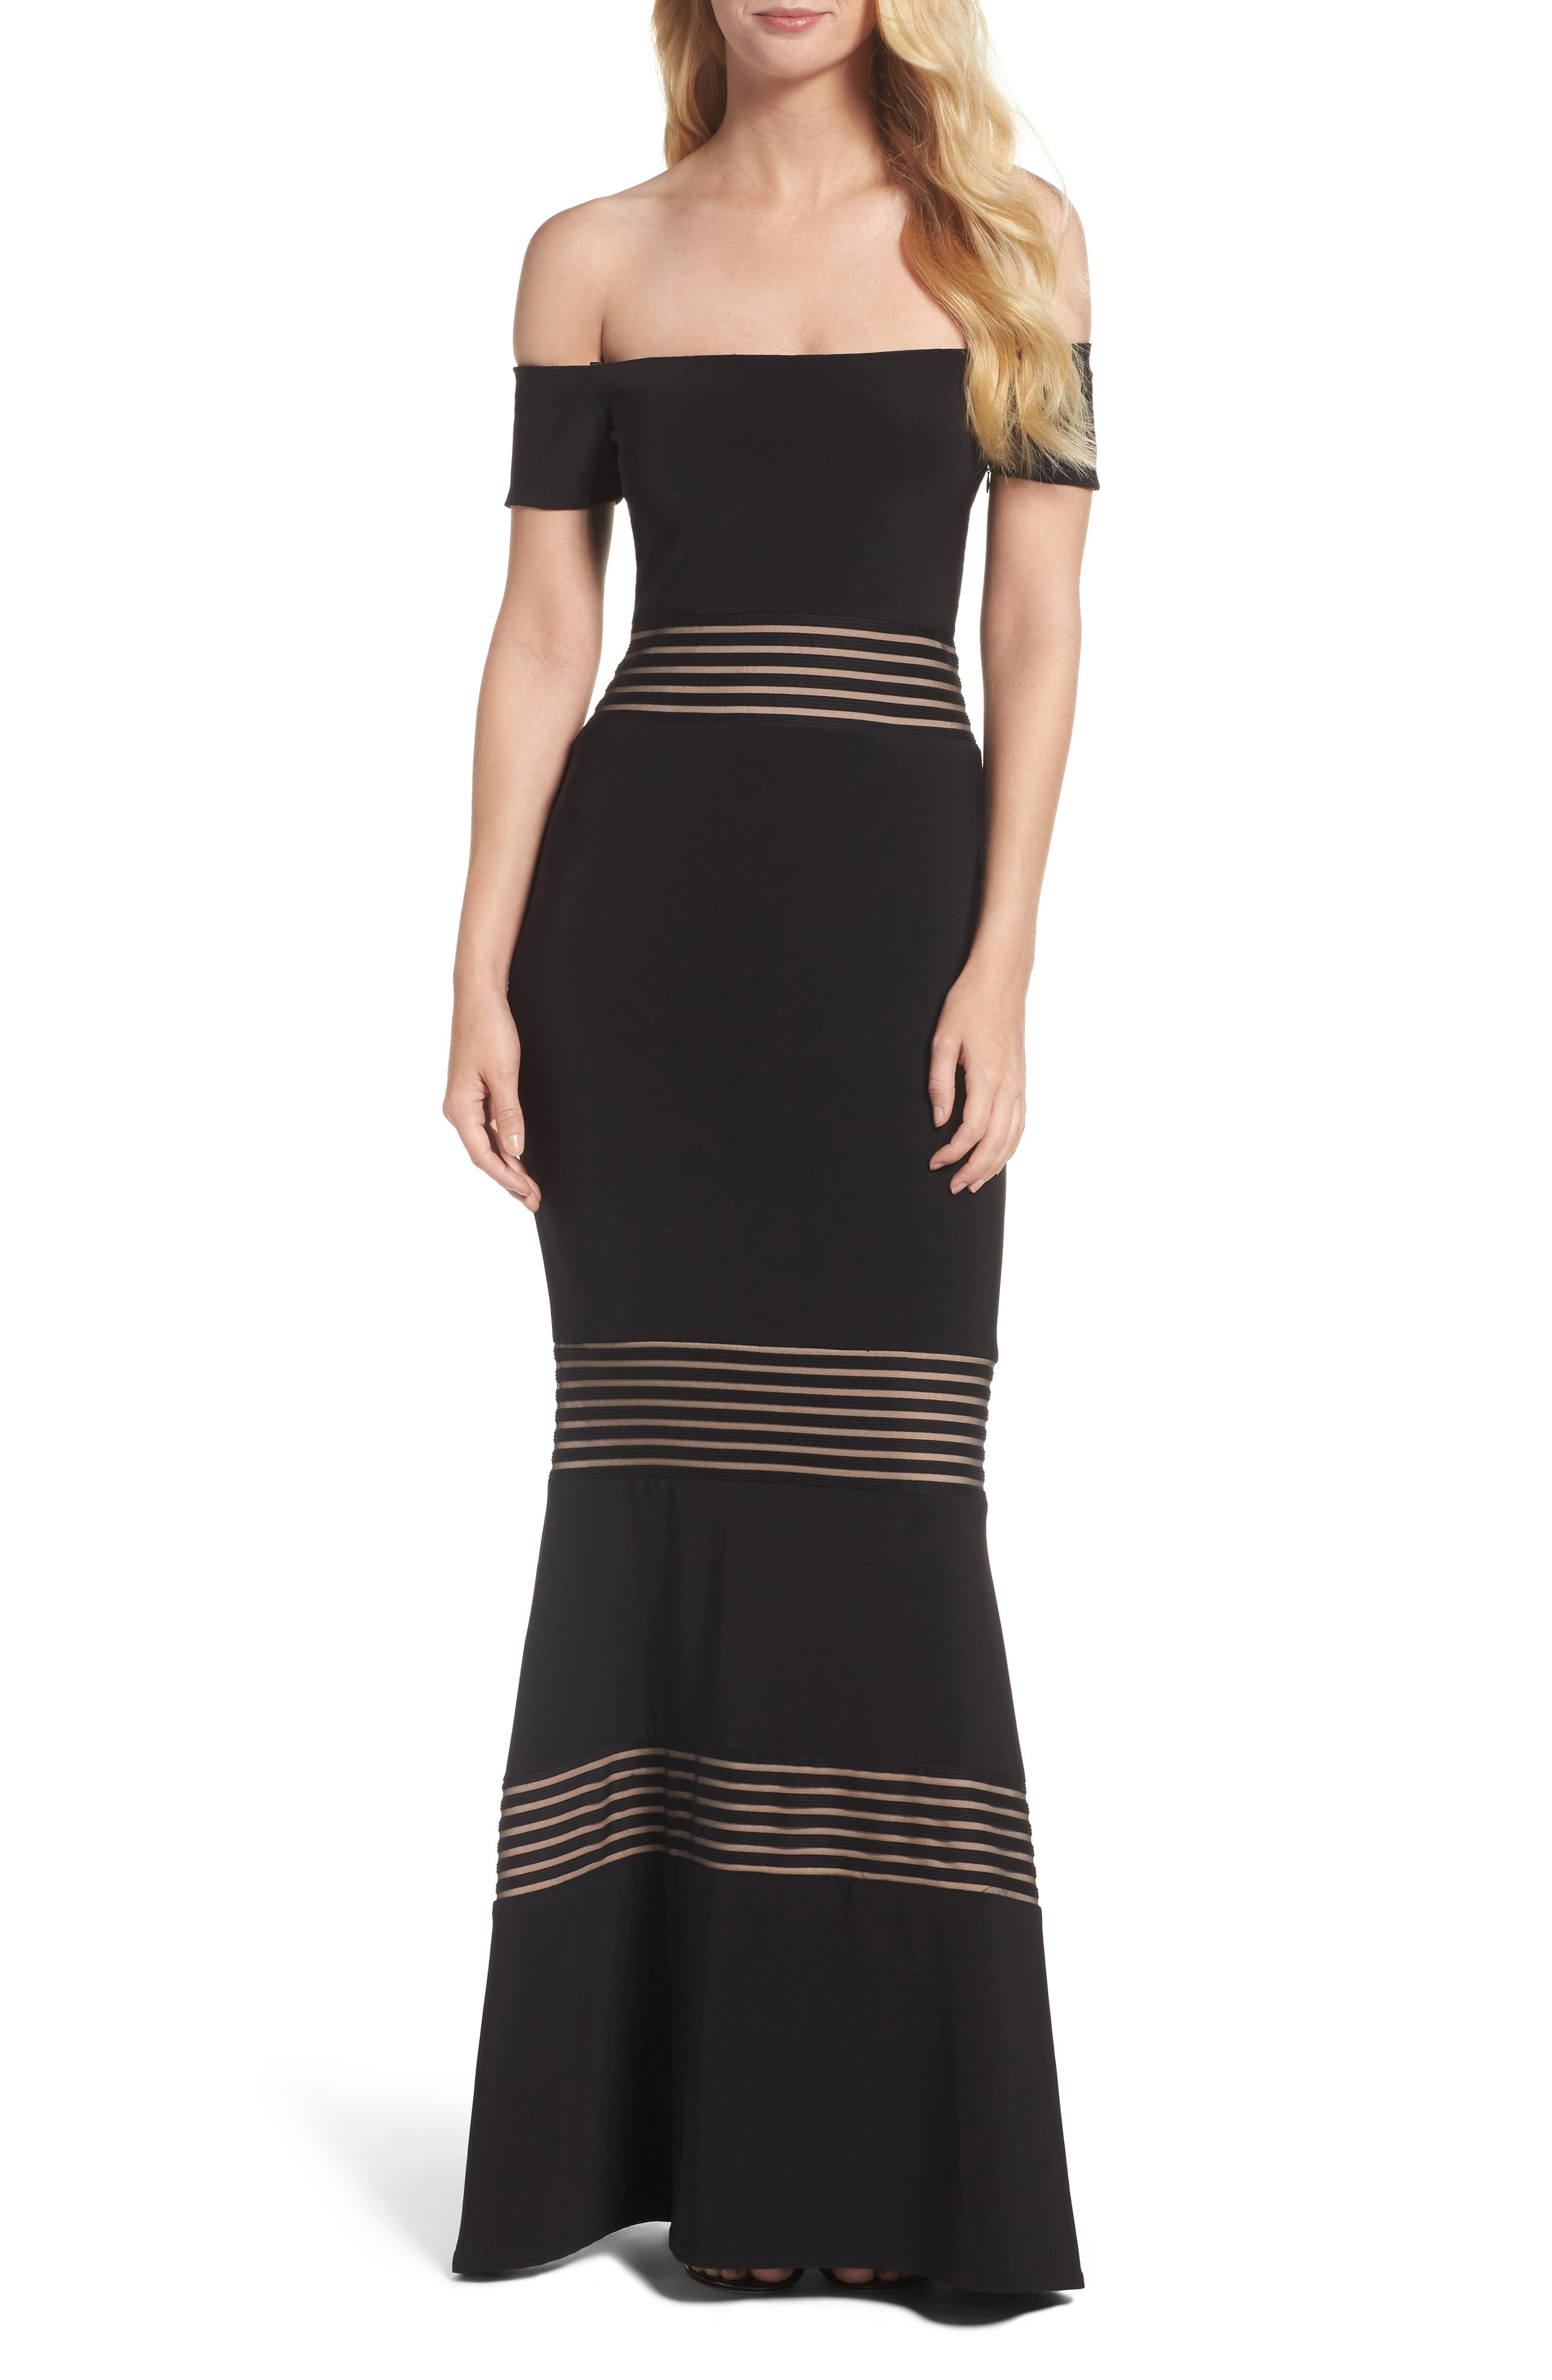 Inset Off the Shoulder Mermaid Gown,                         Main,                         color, Black/ Nude